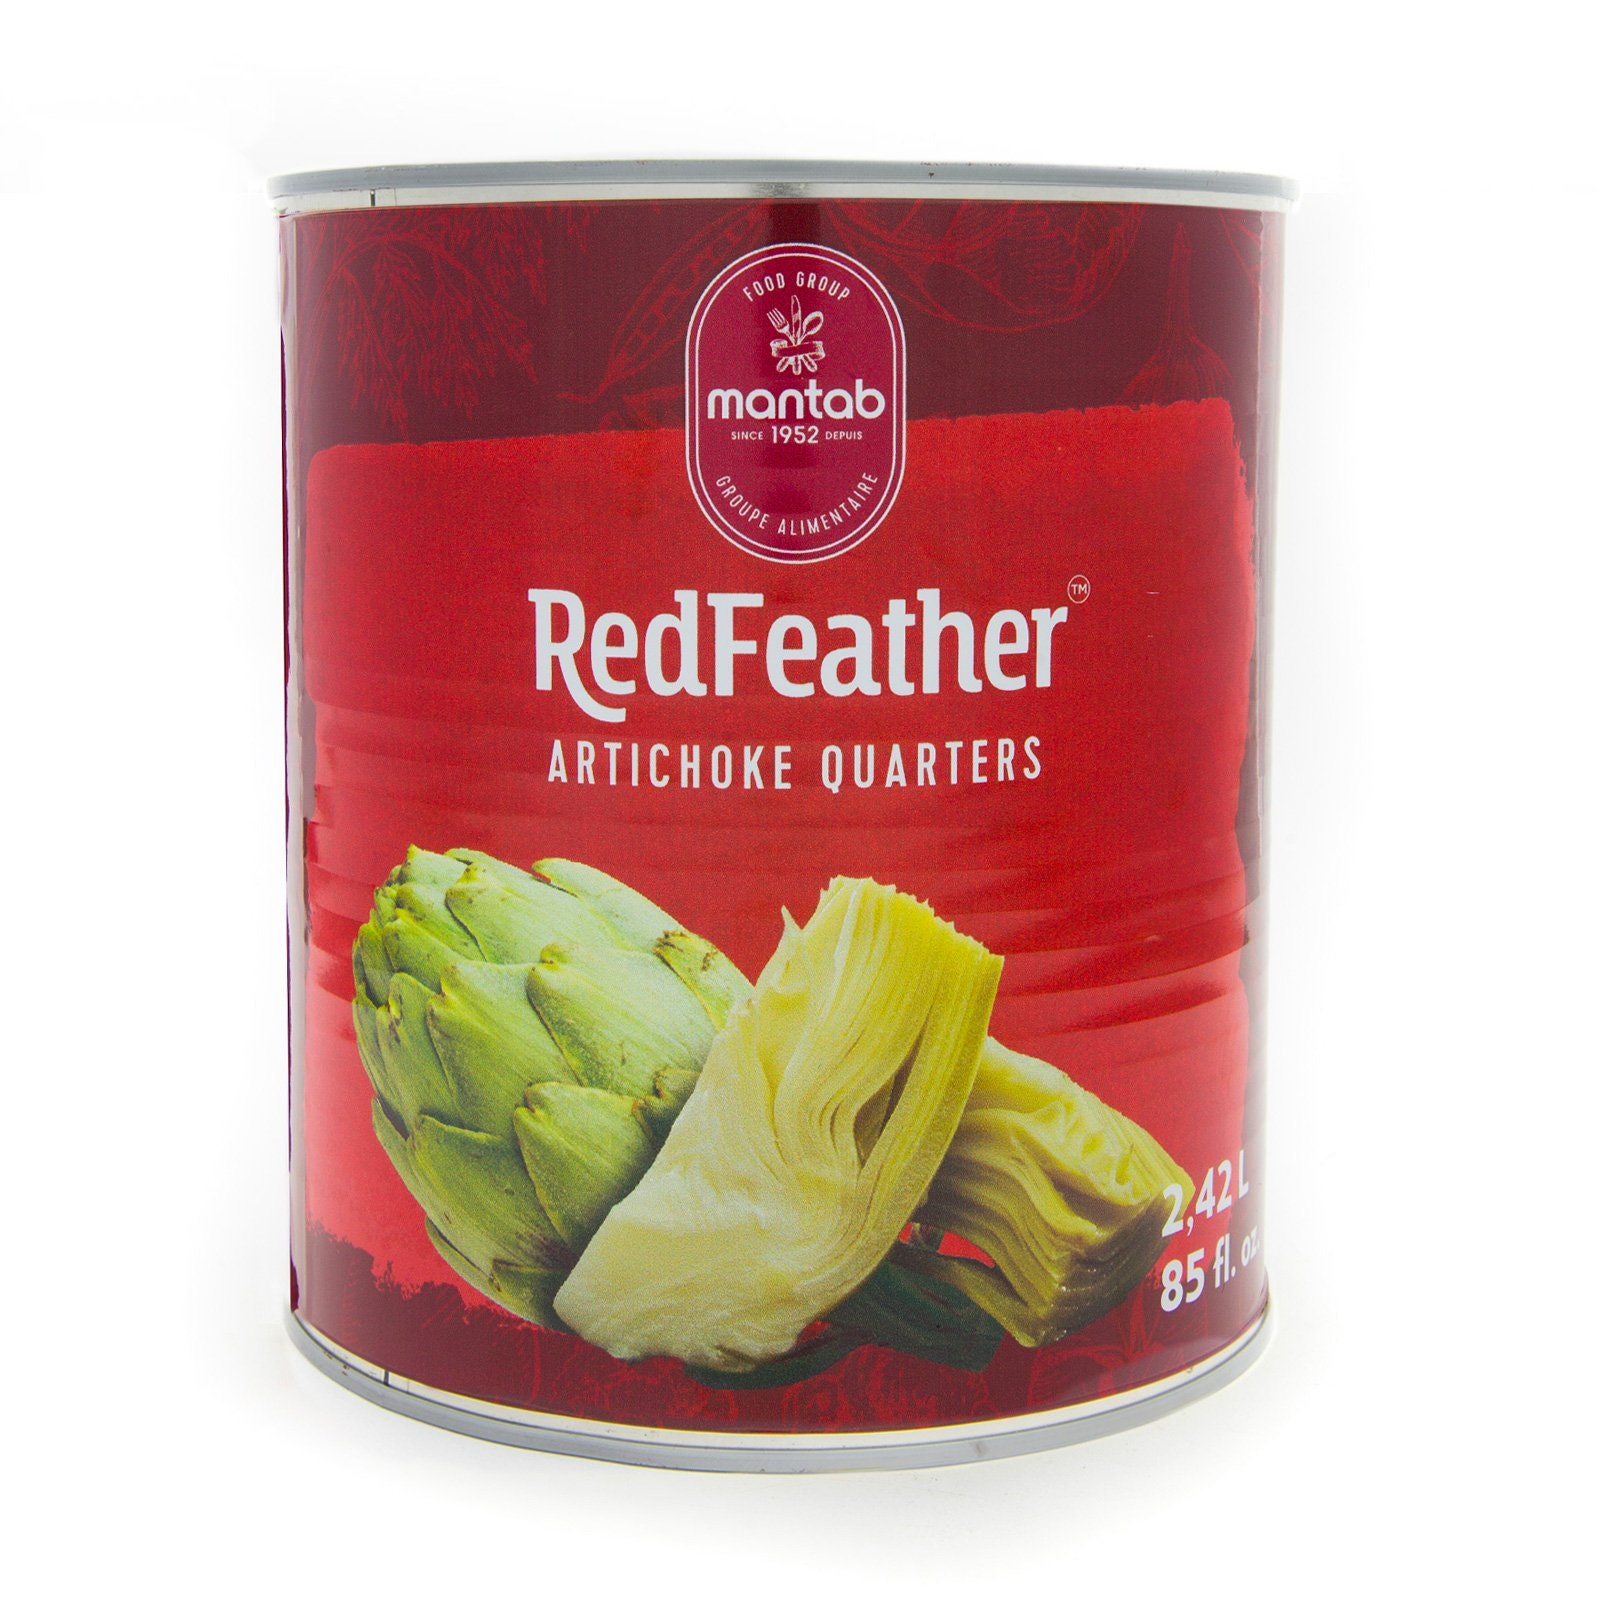 RED FEATHER Artichoke quarters